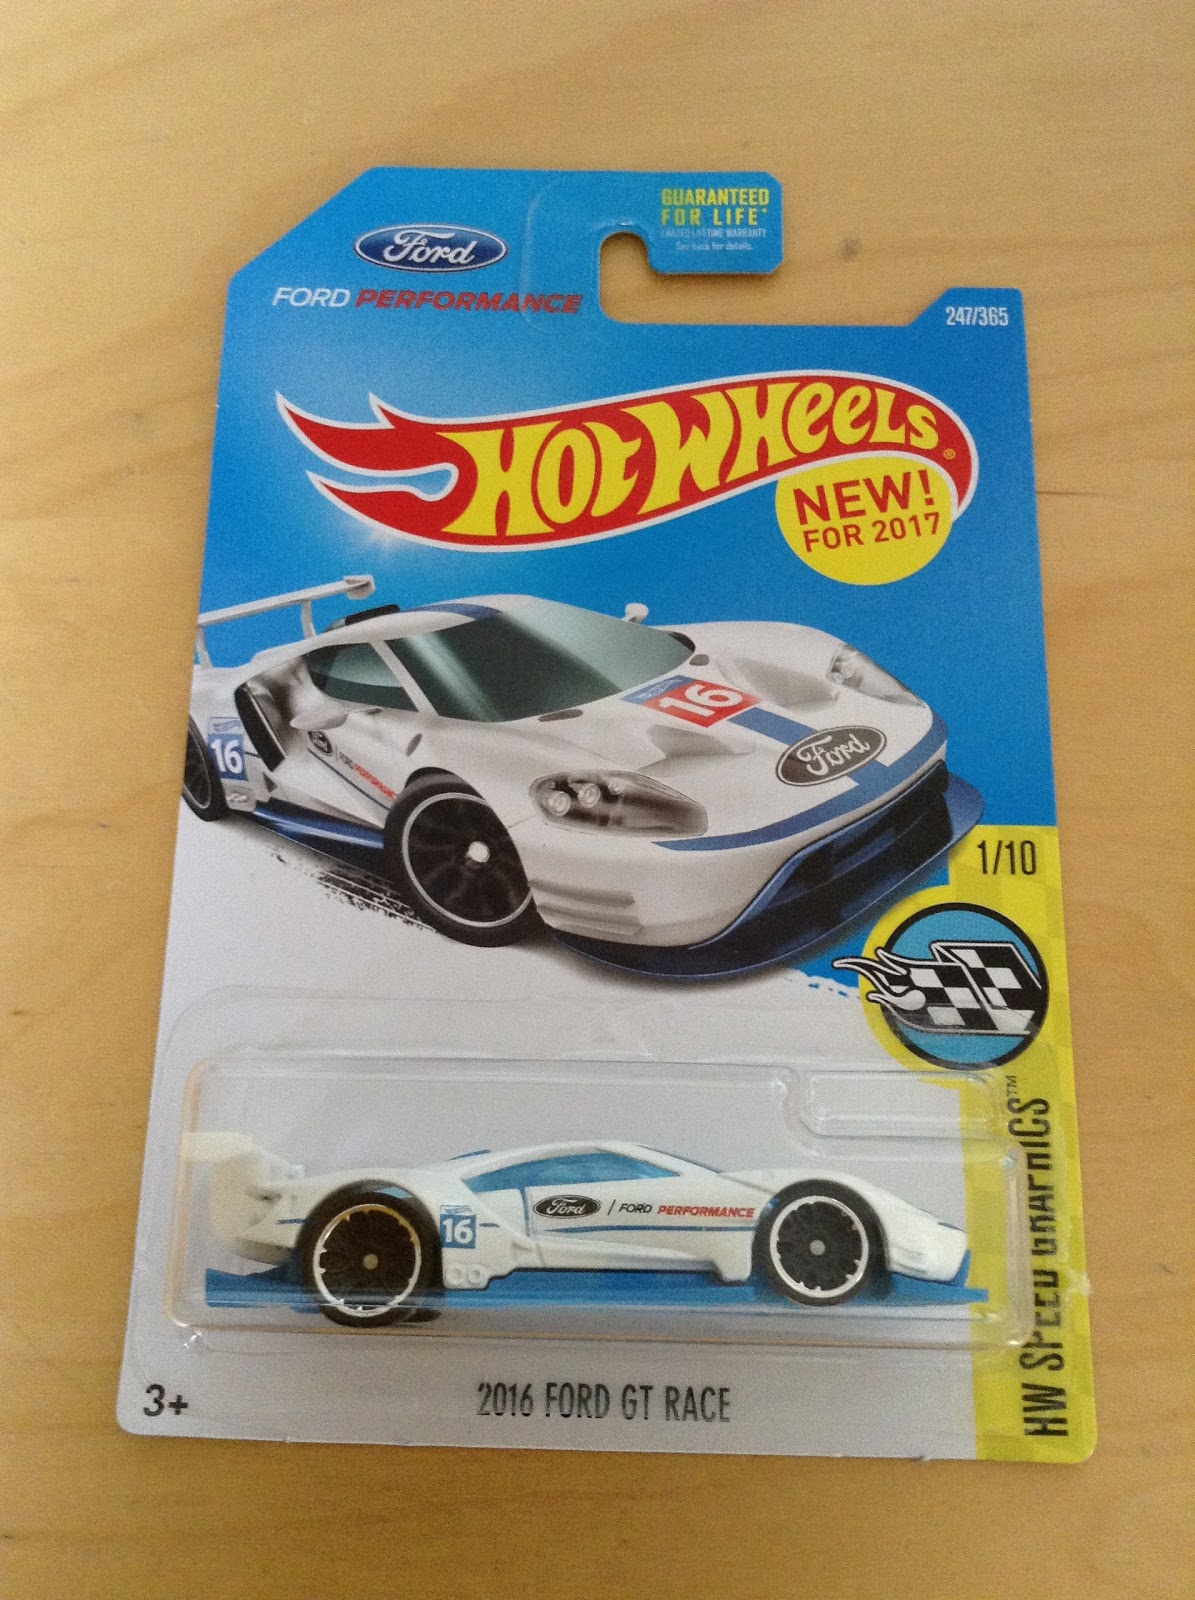 Man What An Awesome Casting This Ford Gt Race Is Dont You Think So Posted By Julians Hot Wheels